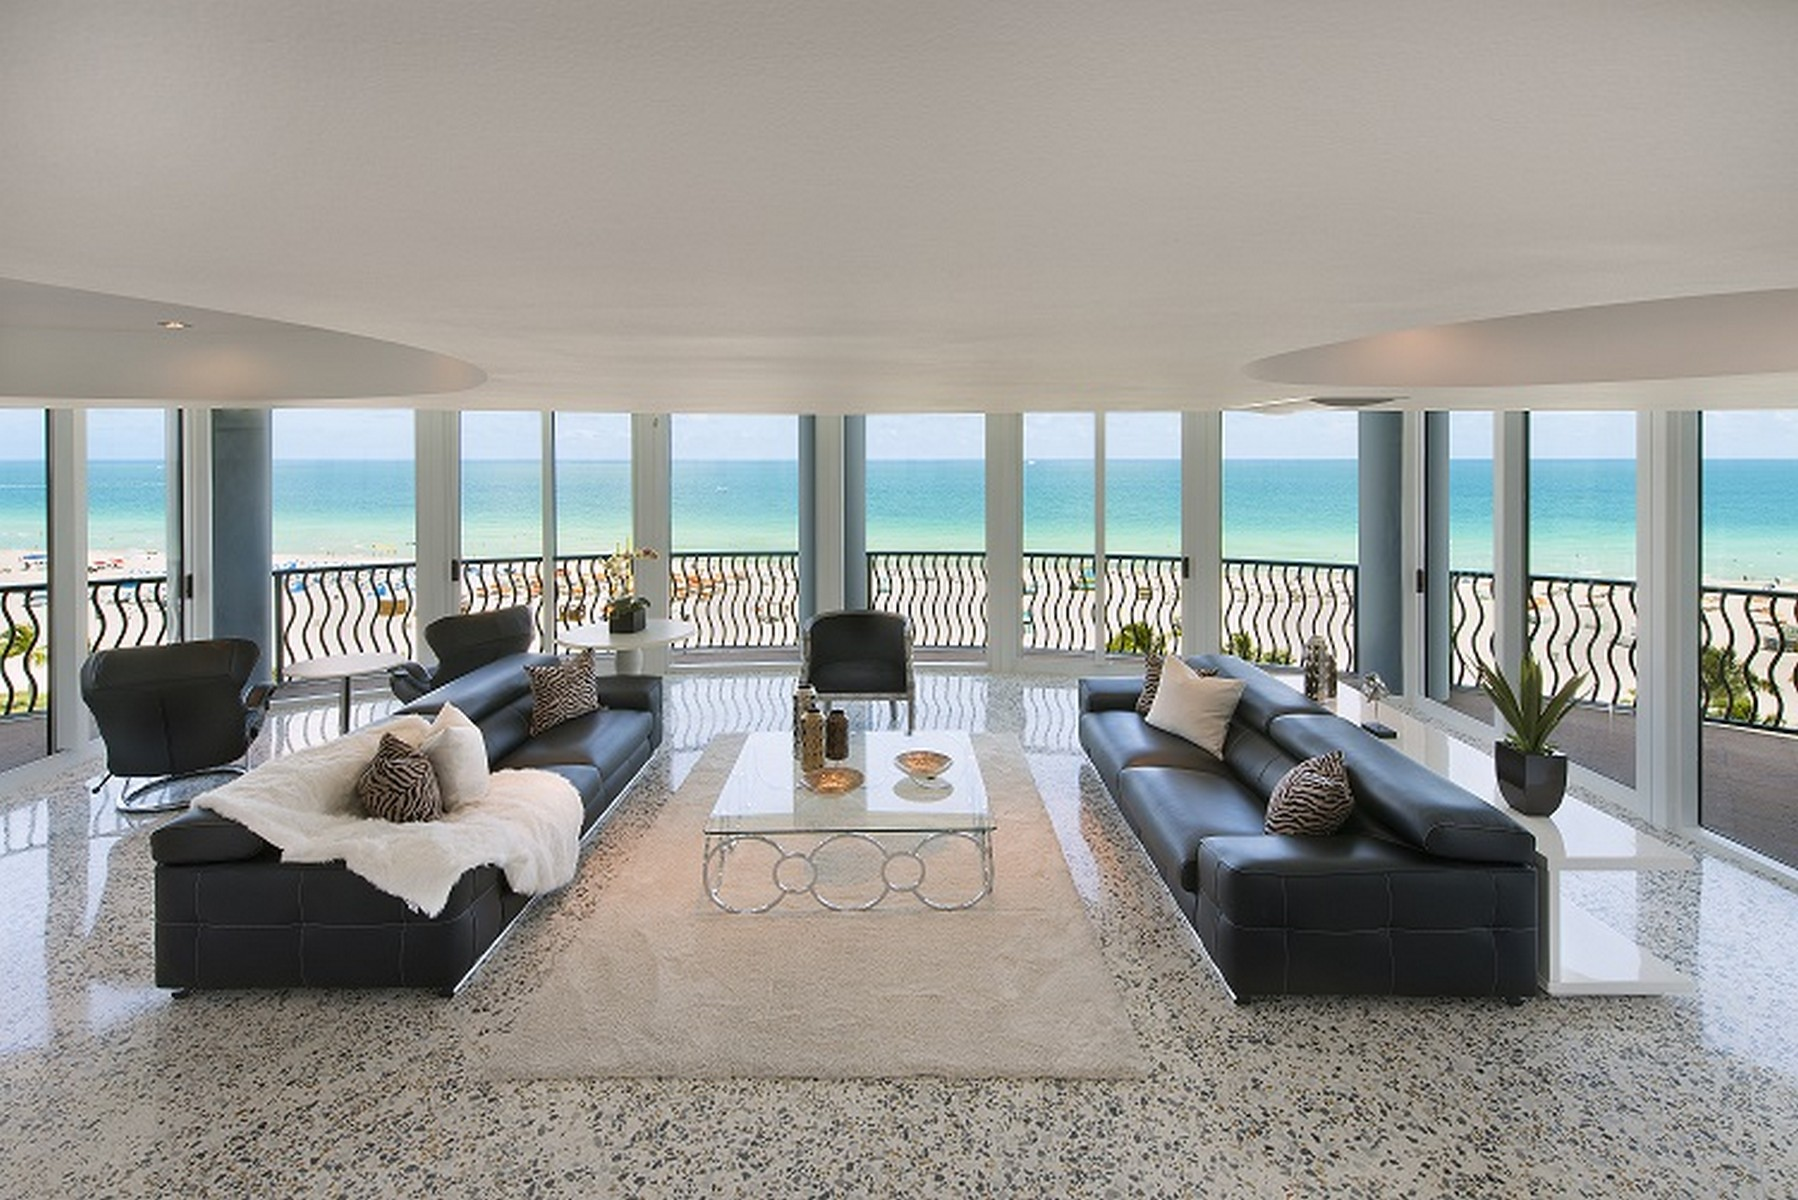 Condominium for Sale at 1500 Ocean Dr # 801/02 Miami Beach, Florida 33139 United States